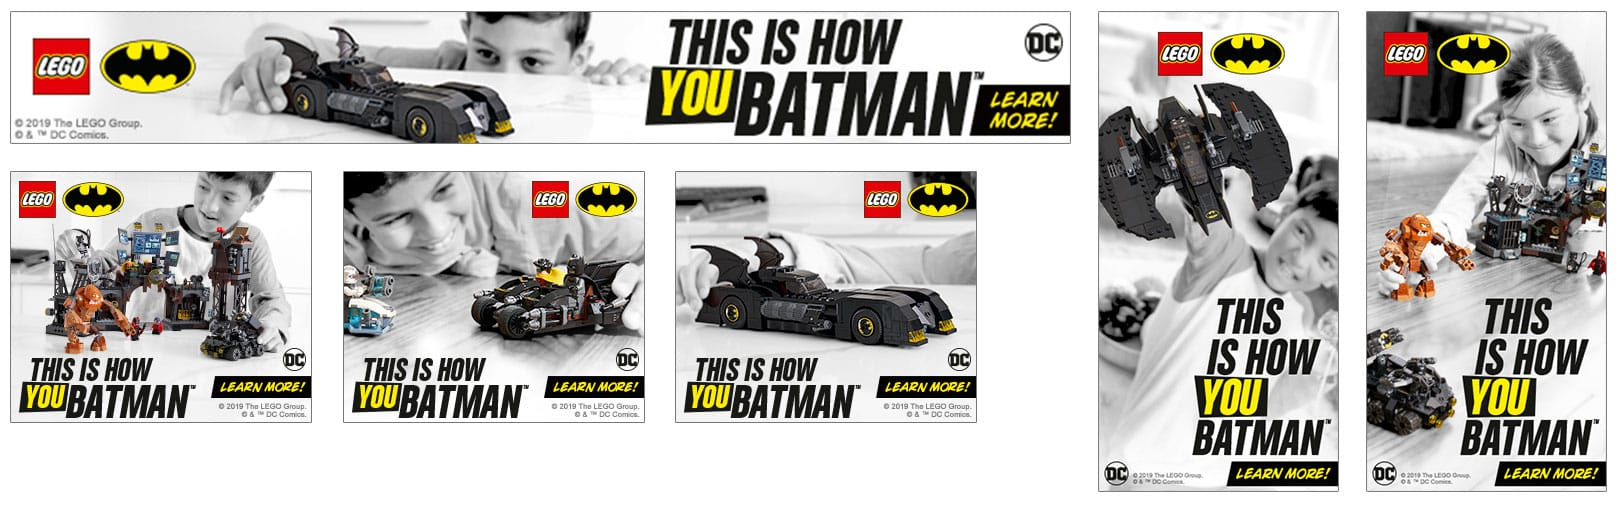 LEGO Batman Campaign — Design: MS / Copy: Peter Min / Photo: Atwater